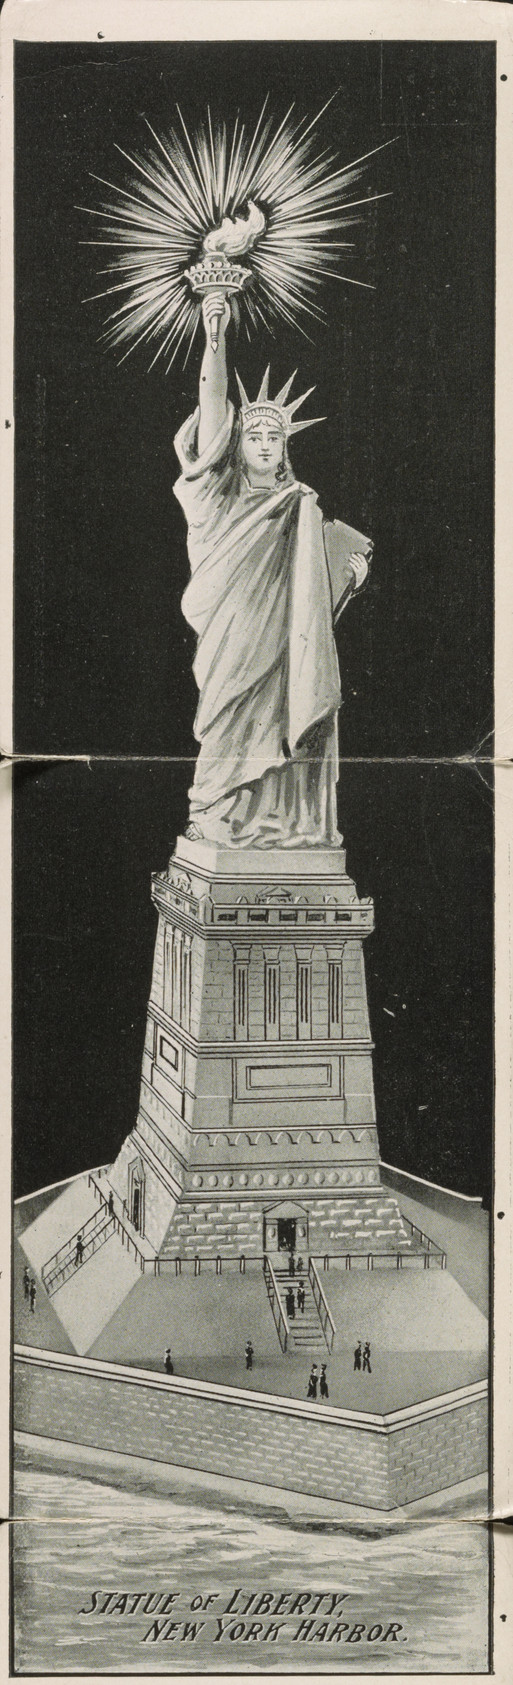 State-of-liberty-postcard-02598u-compres